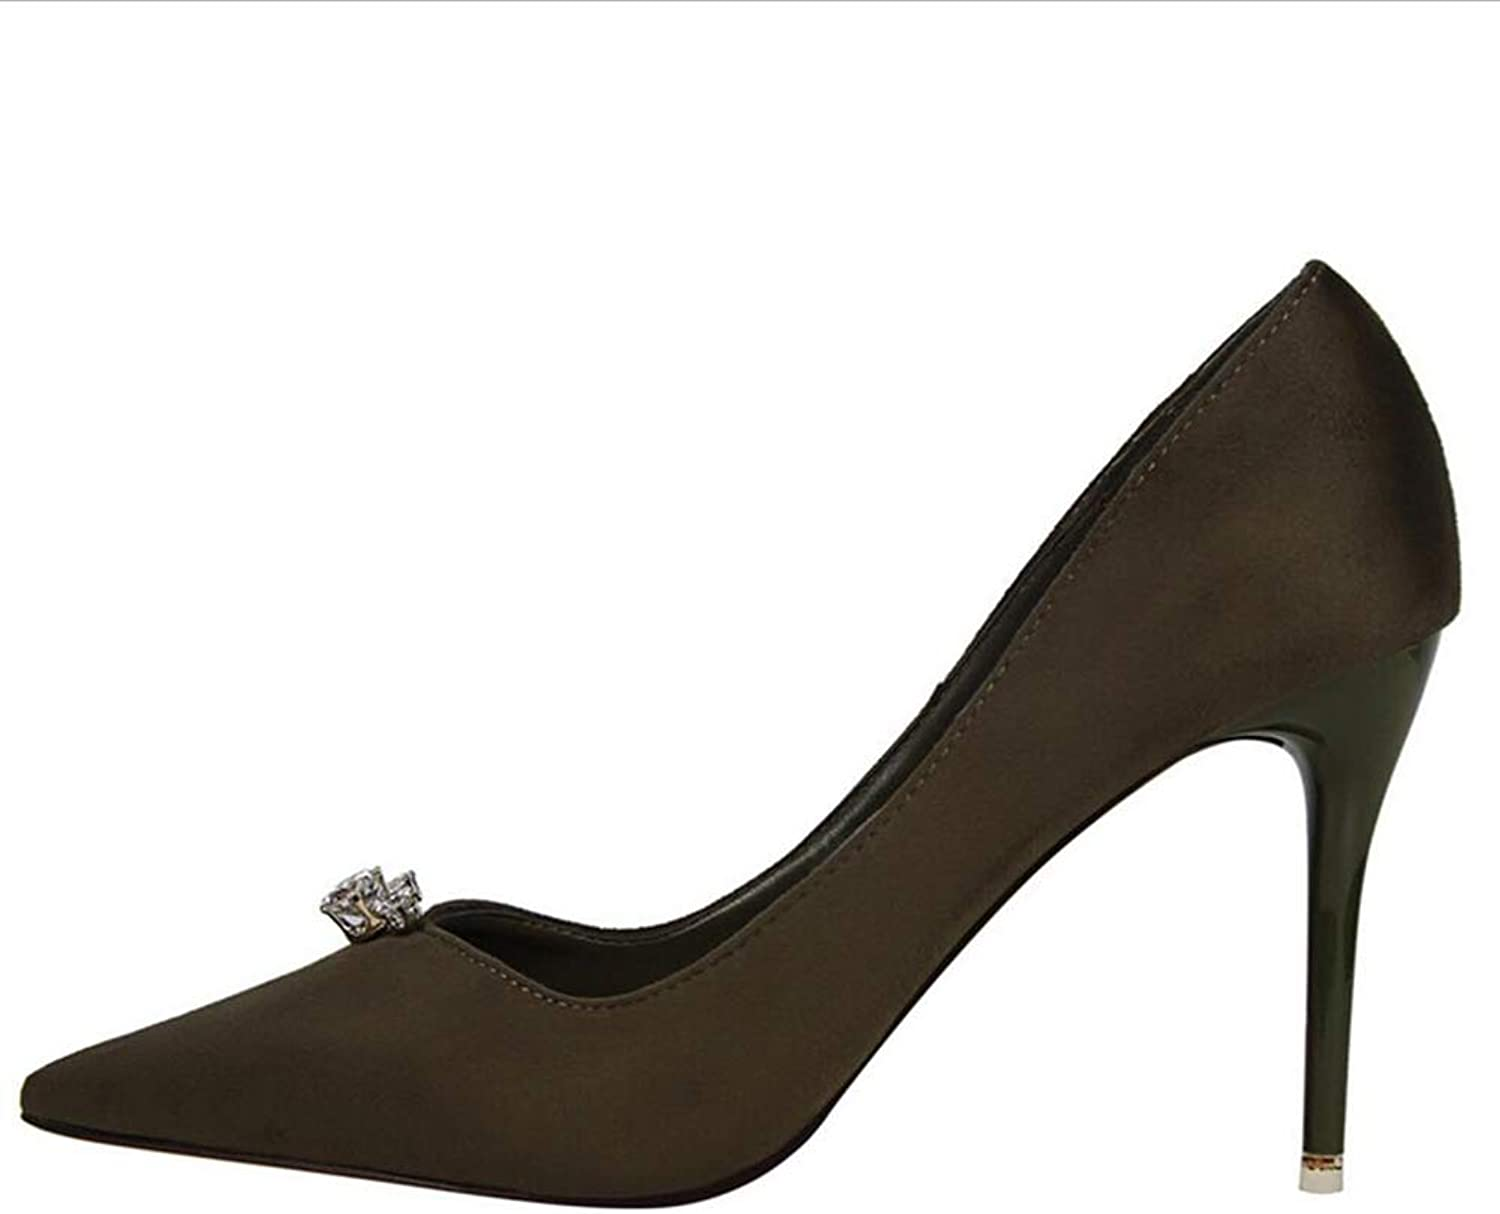 Court shoes Women's shoes shoes Simple Sexy Fine Heel High-Heeled Shallow Mouth Pointed Suede Rhinestone shoes High-Heeled shoes Haiming (color   Green, Size   37)